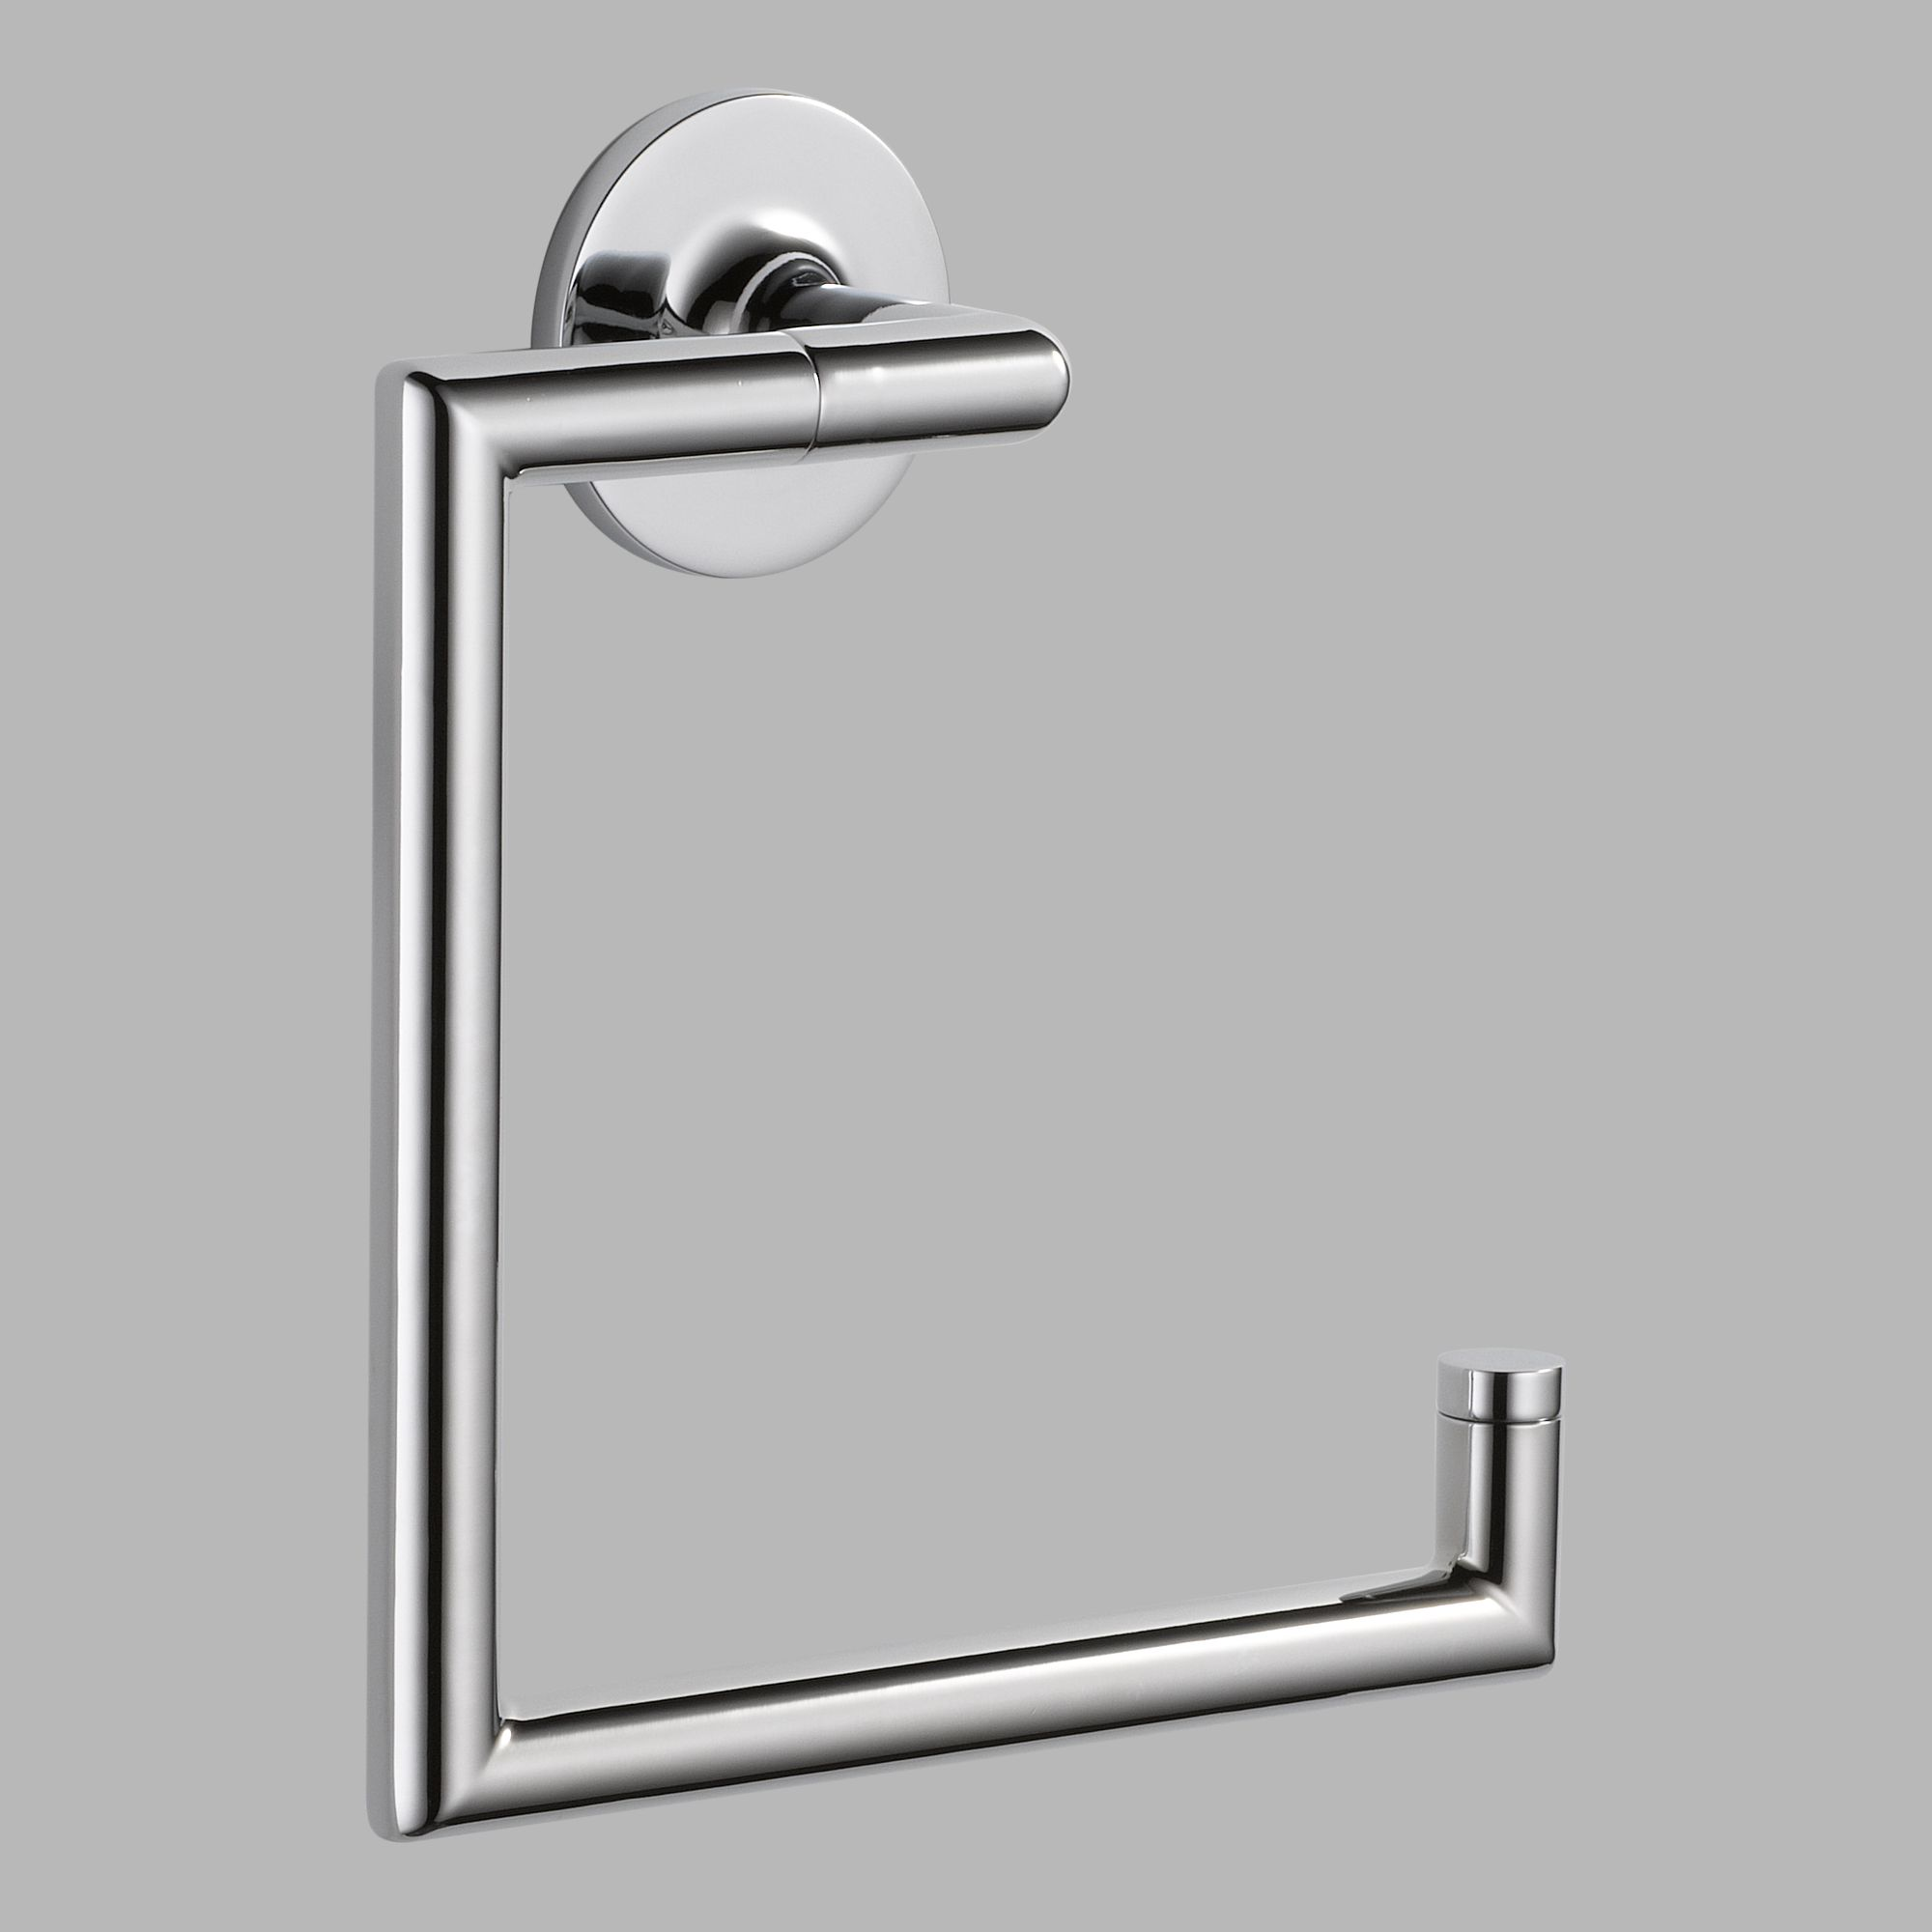 694675 Brizo Odin Towel Ring